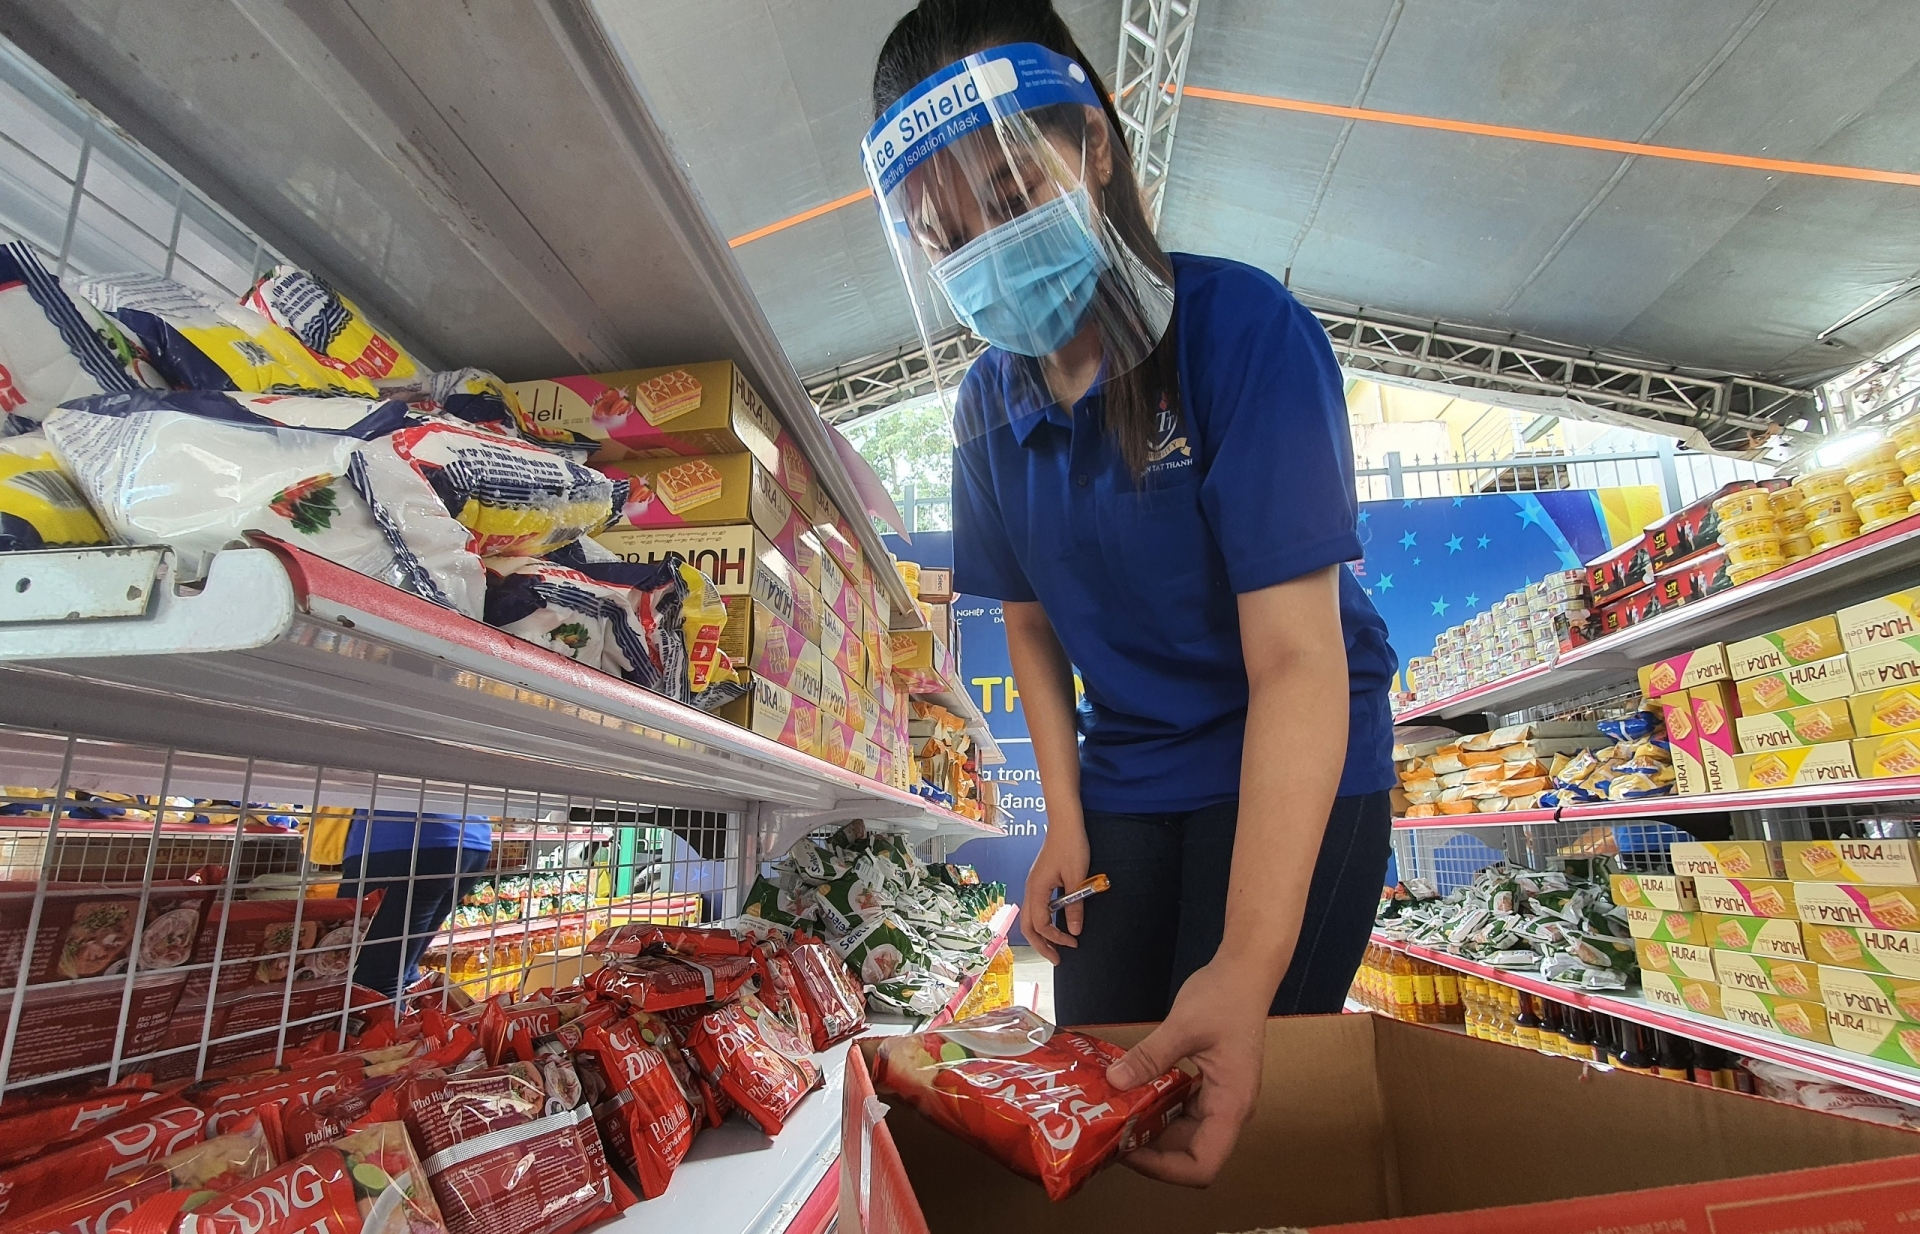 Ho Chi Minh City allows employees of listed stores to be out on work after 6pm